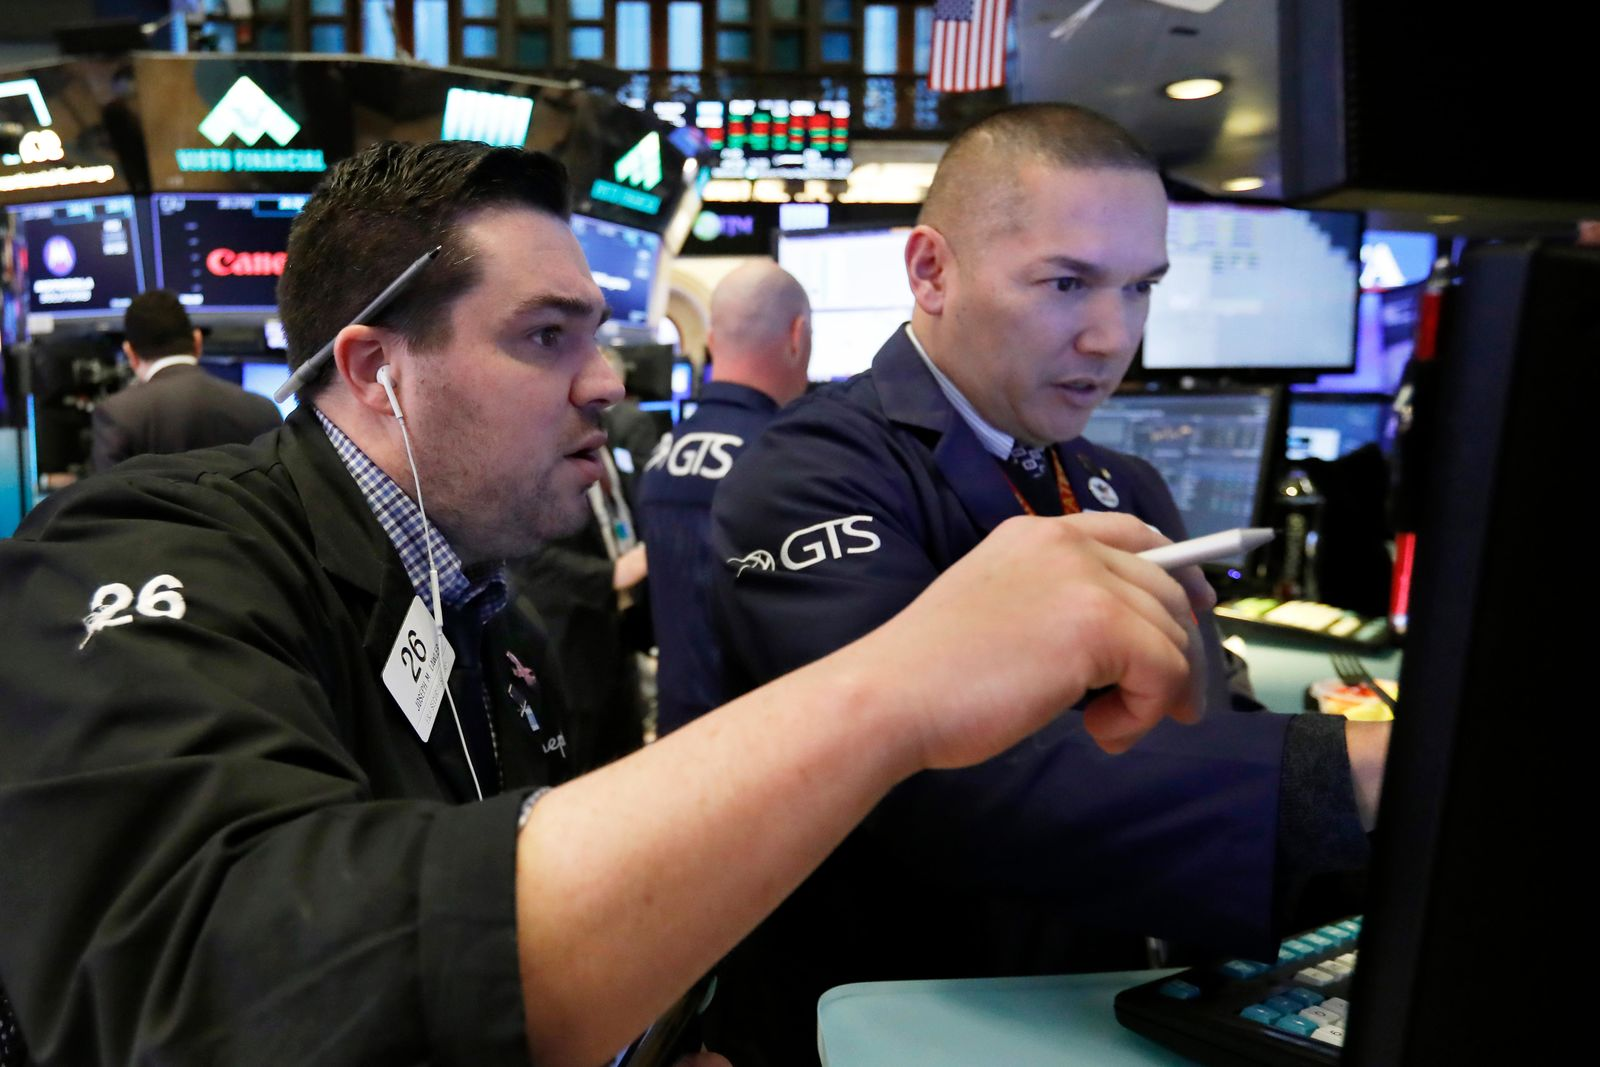 FILE - Trader Joseph Lawler, left, and specialist Mark Otto work on the floor of the New York Stock Exchange, Friday, Jan. 11, 2019. (AP Photo/Richard Drew)